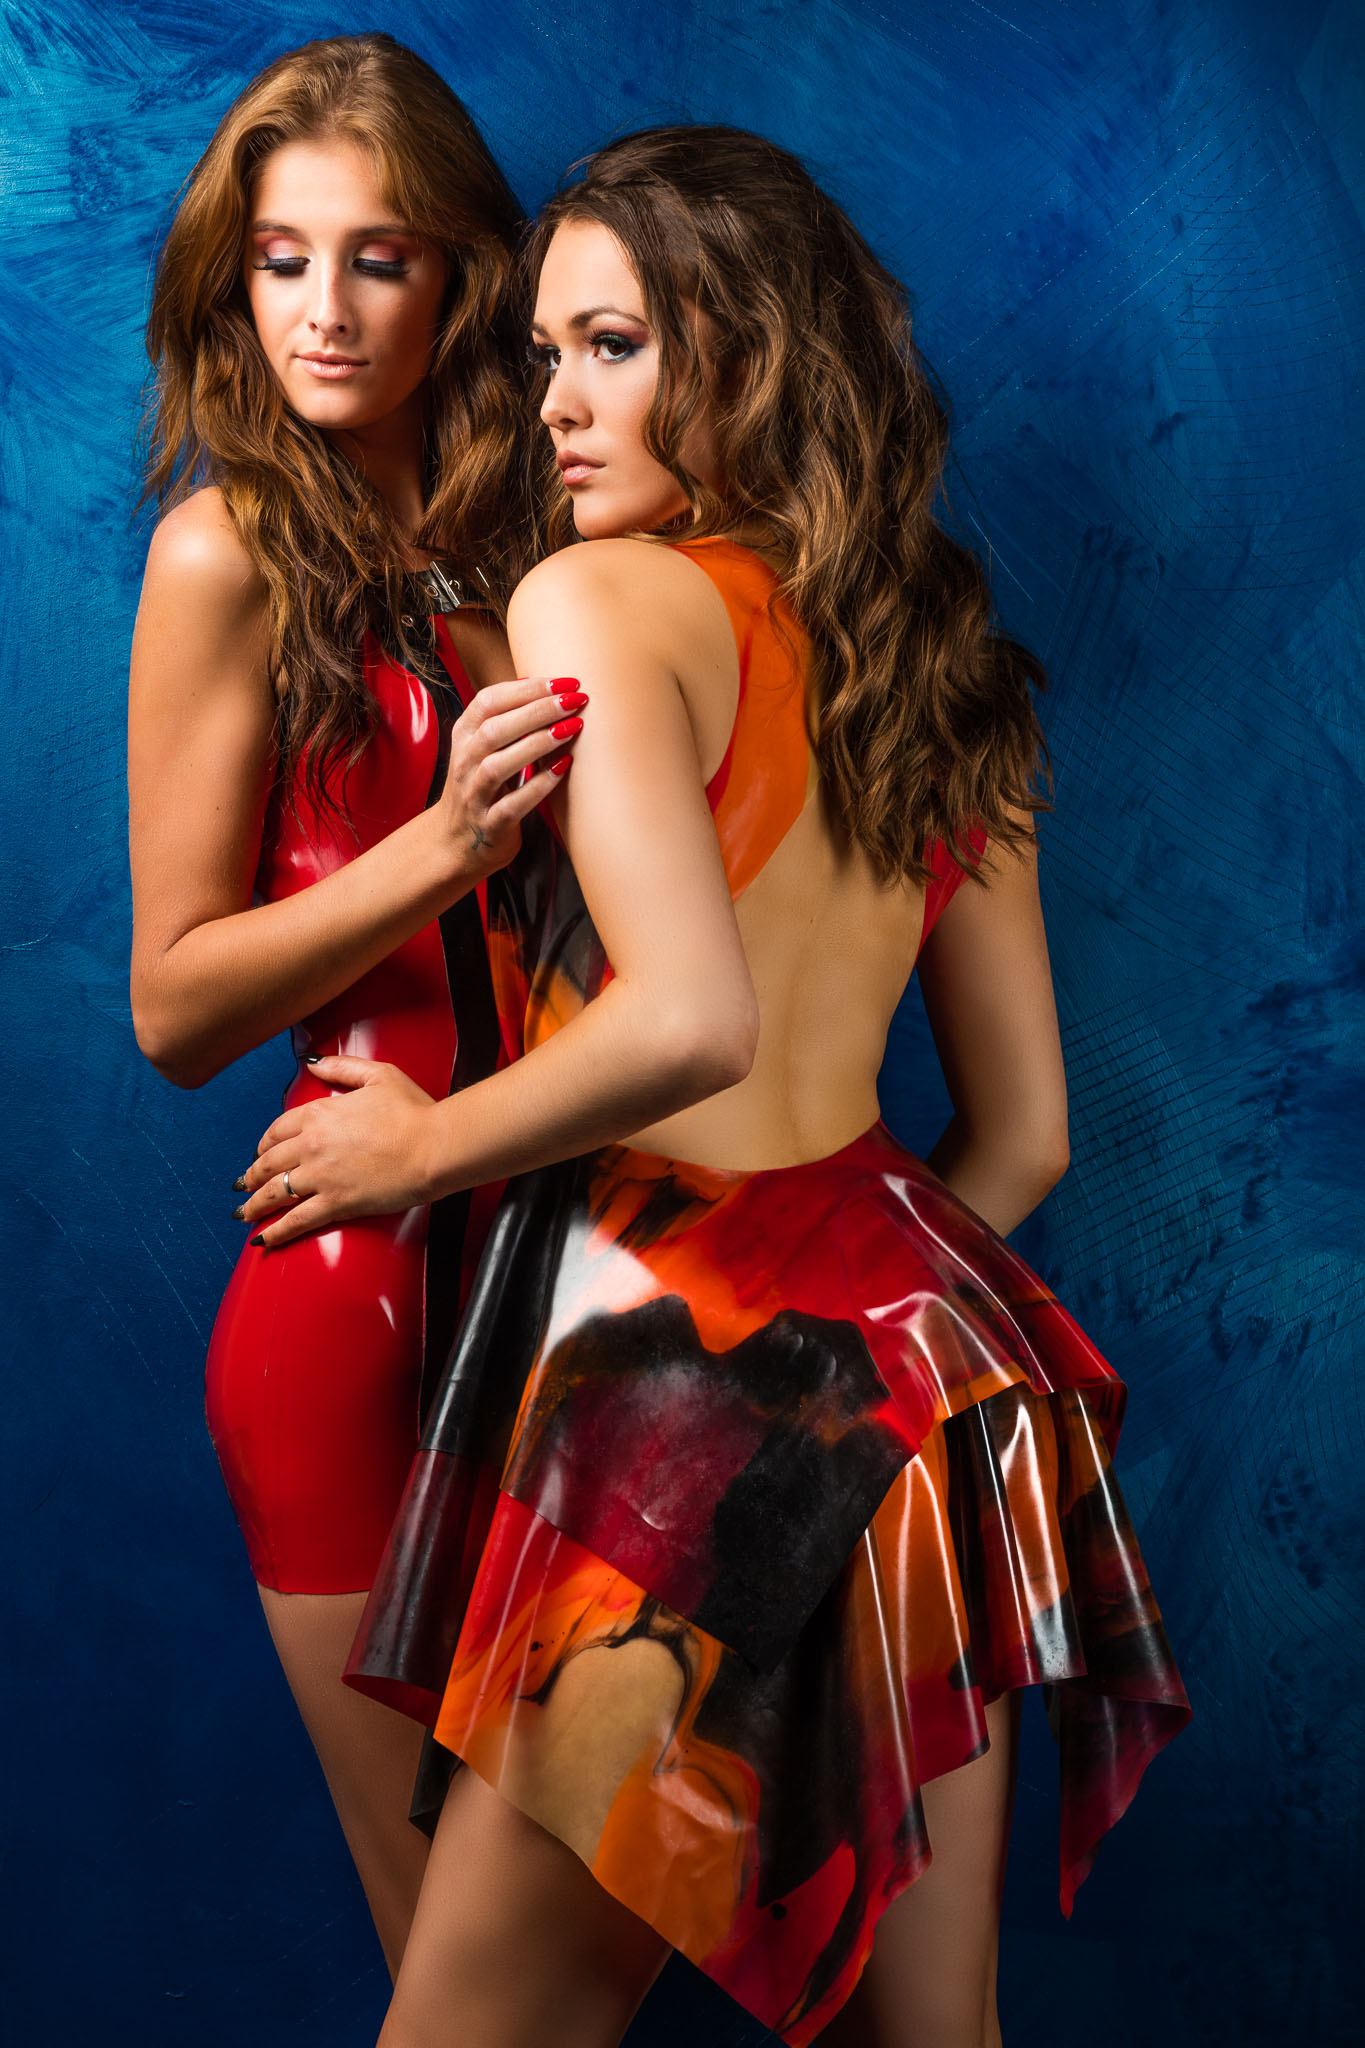 Shannety & Kyara in Matching Latex Dresses